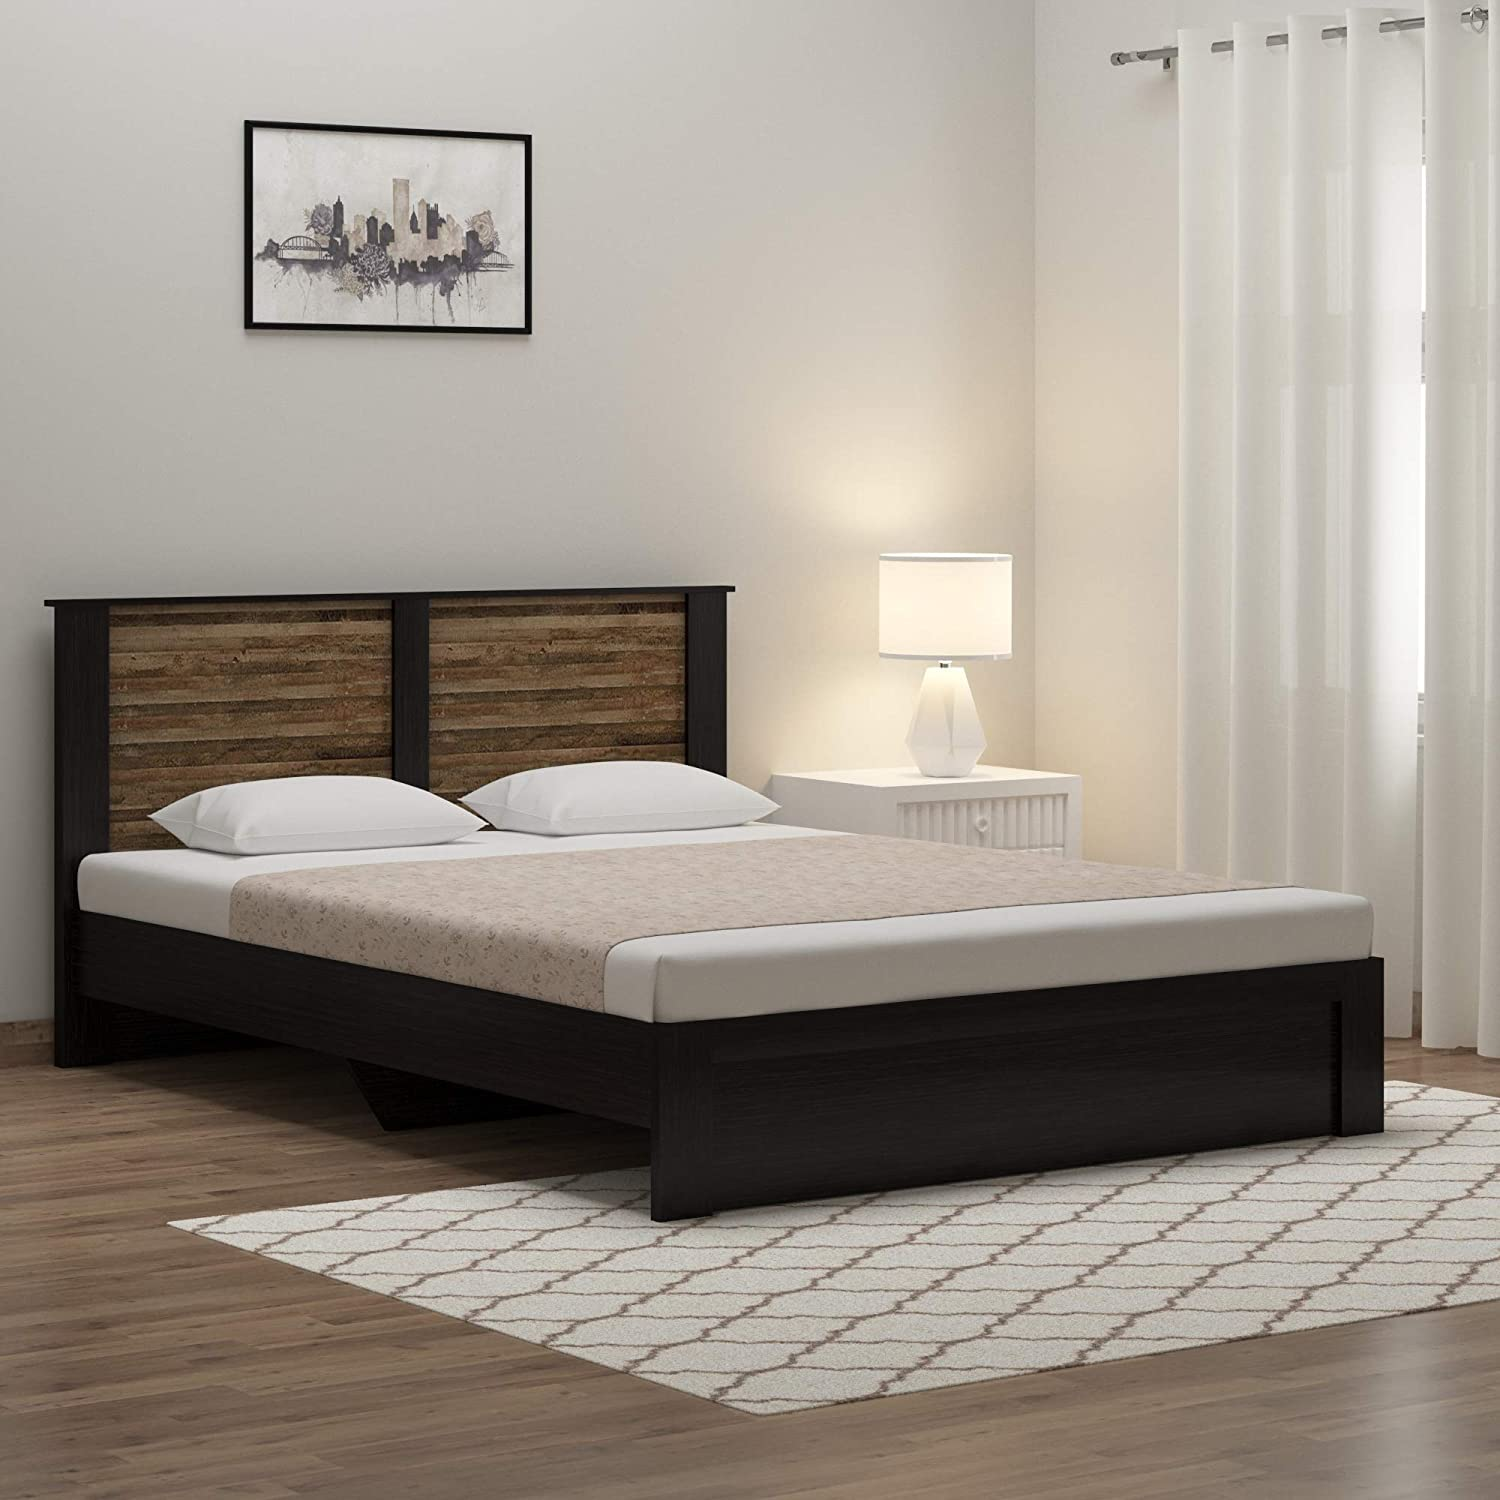 Spacewood Joy Queen Size Engineered Wood Bed (Particle Board